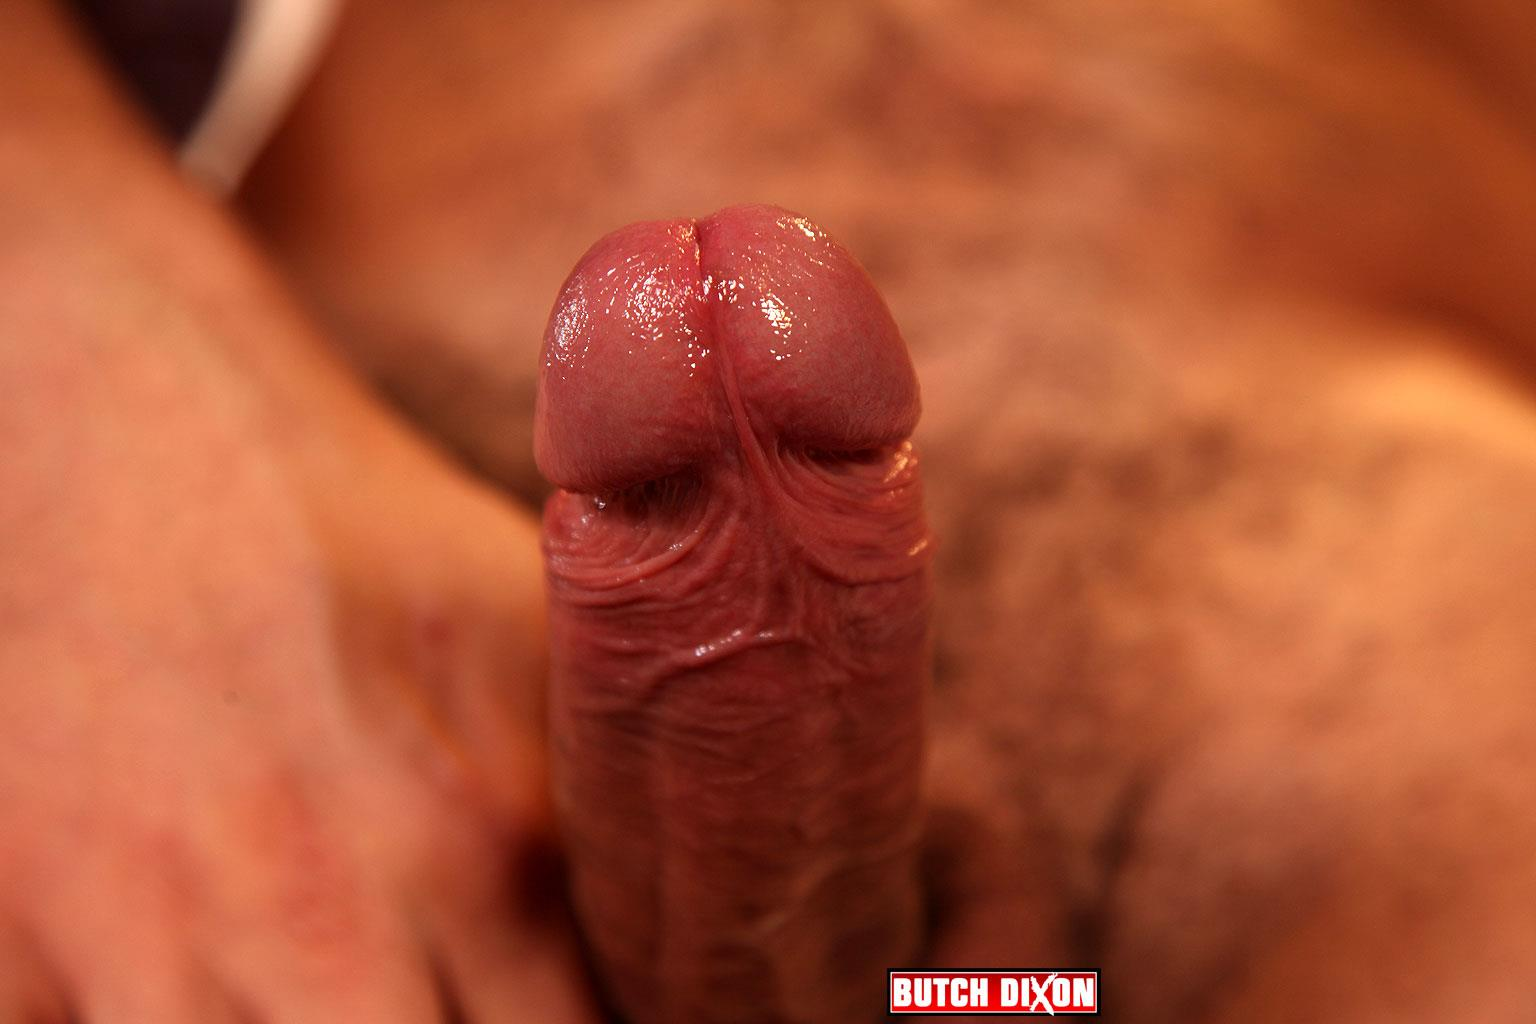 Butch Dixon Delta Kobra Muscle Hunk With A Big Uncut Cock Jerking Off Amateur Gay Porn 17